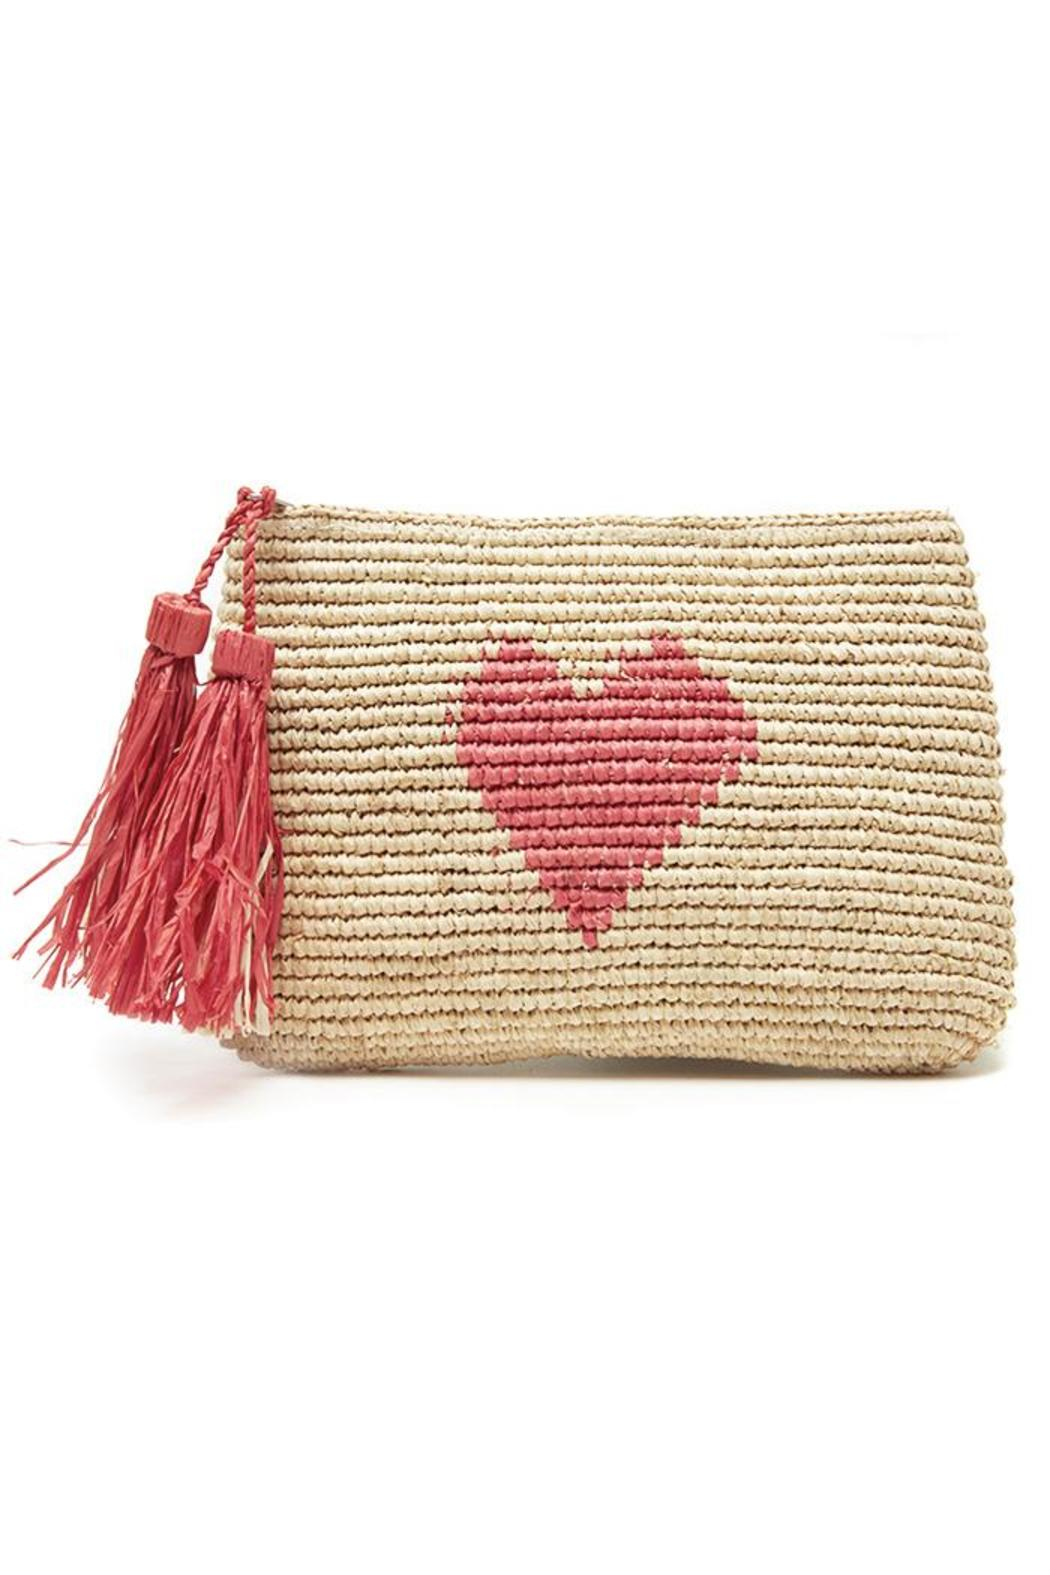 975683ec1 Mar Y Sol Tassel Crochet Clutch from Canada by Simple Chic — Shoptiques